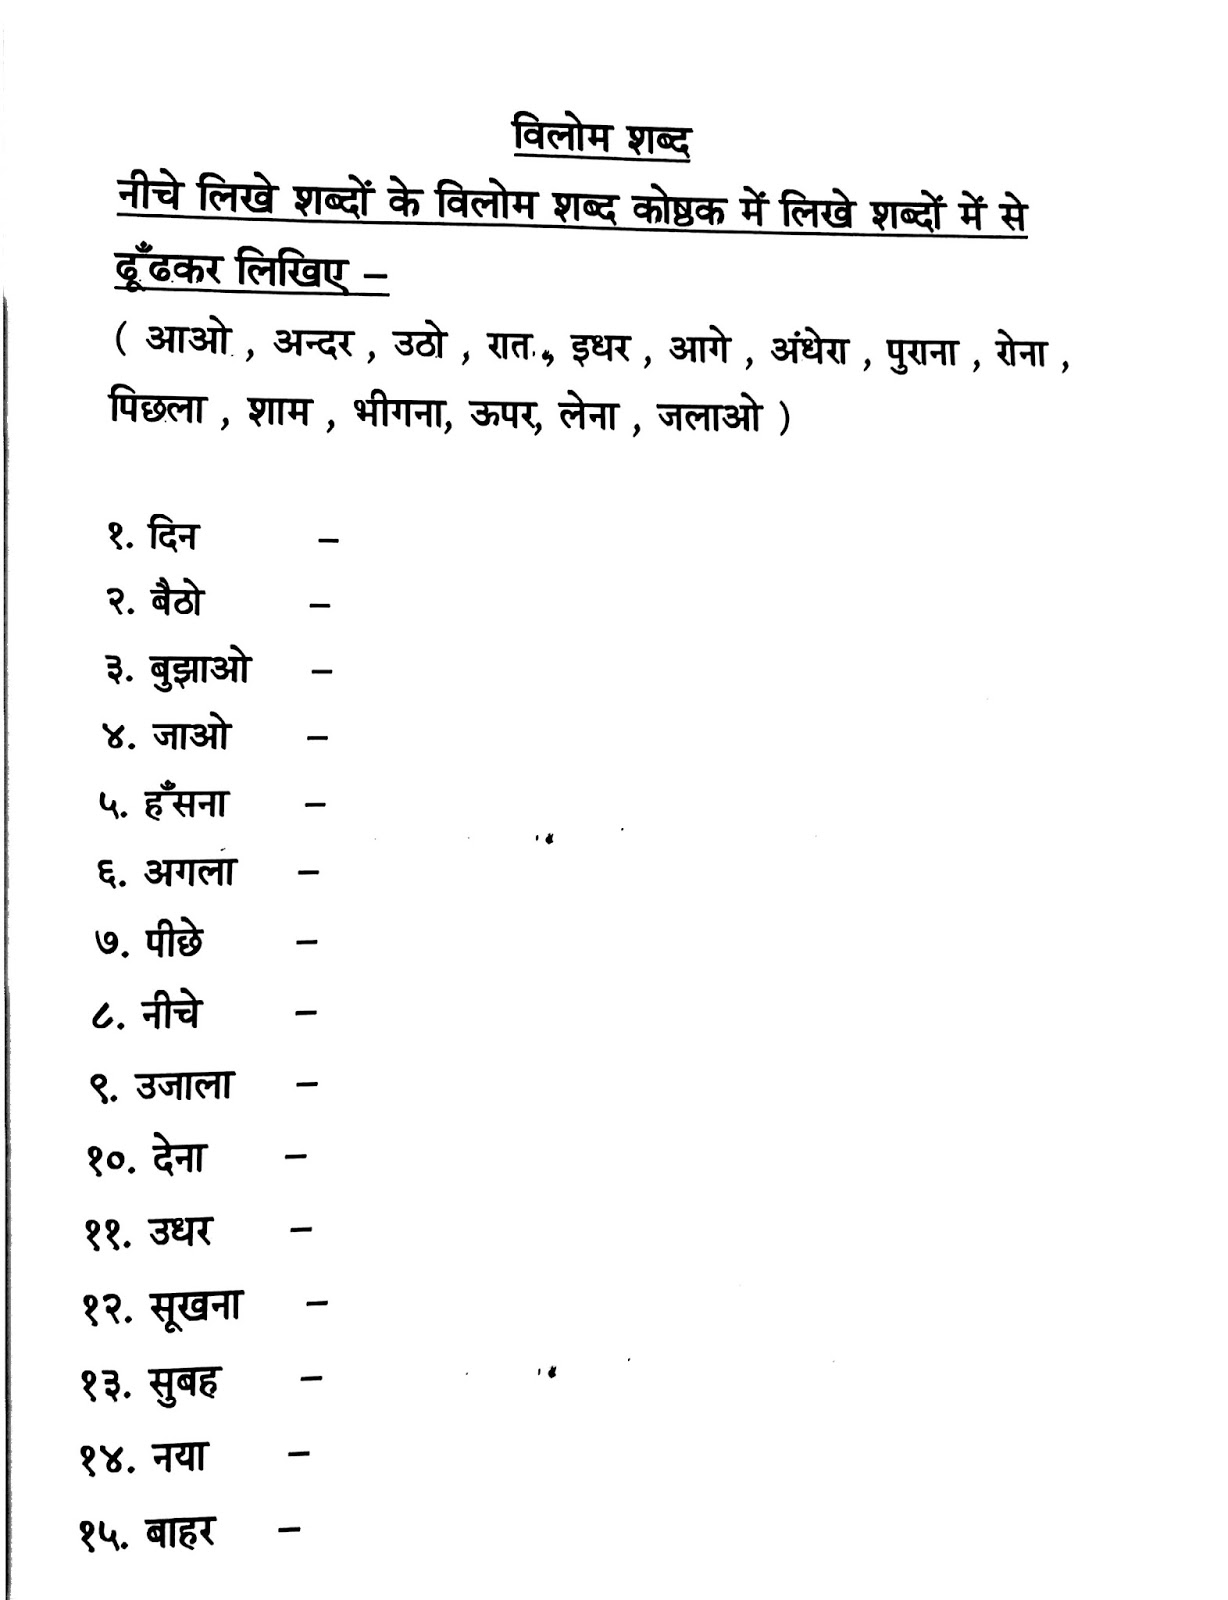 Hindi Grammar Work Sheet Collection For Classes 5 6 7 Amp 8 Opposites Work Sheets For Classes 3